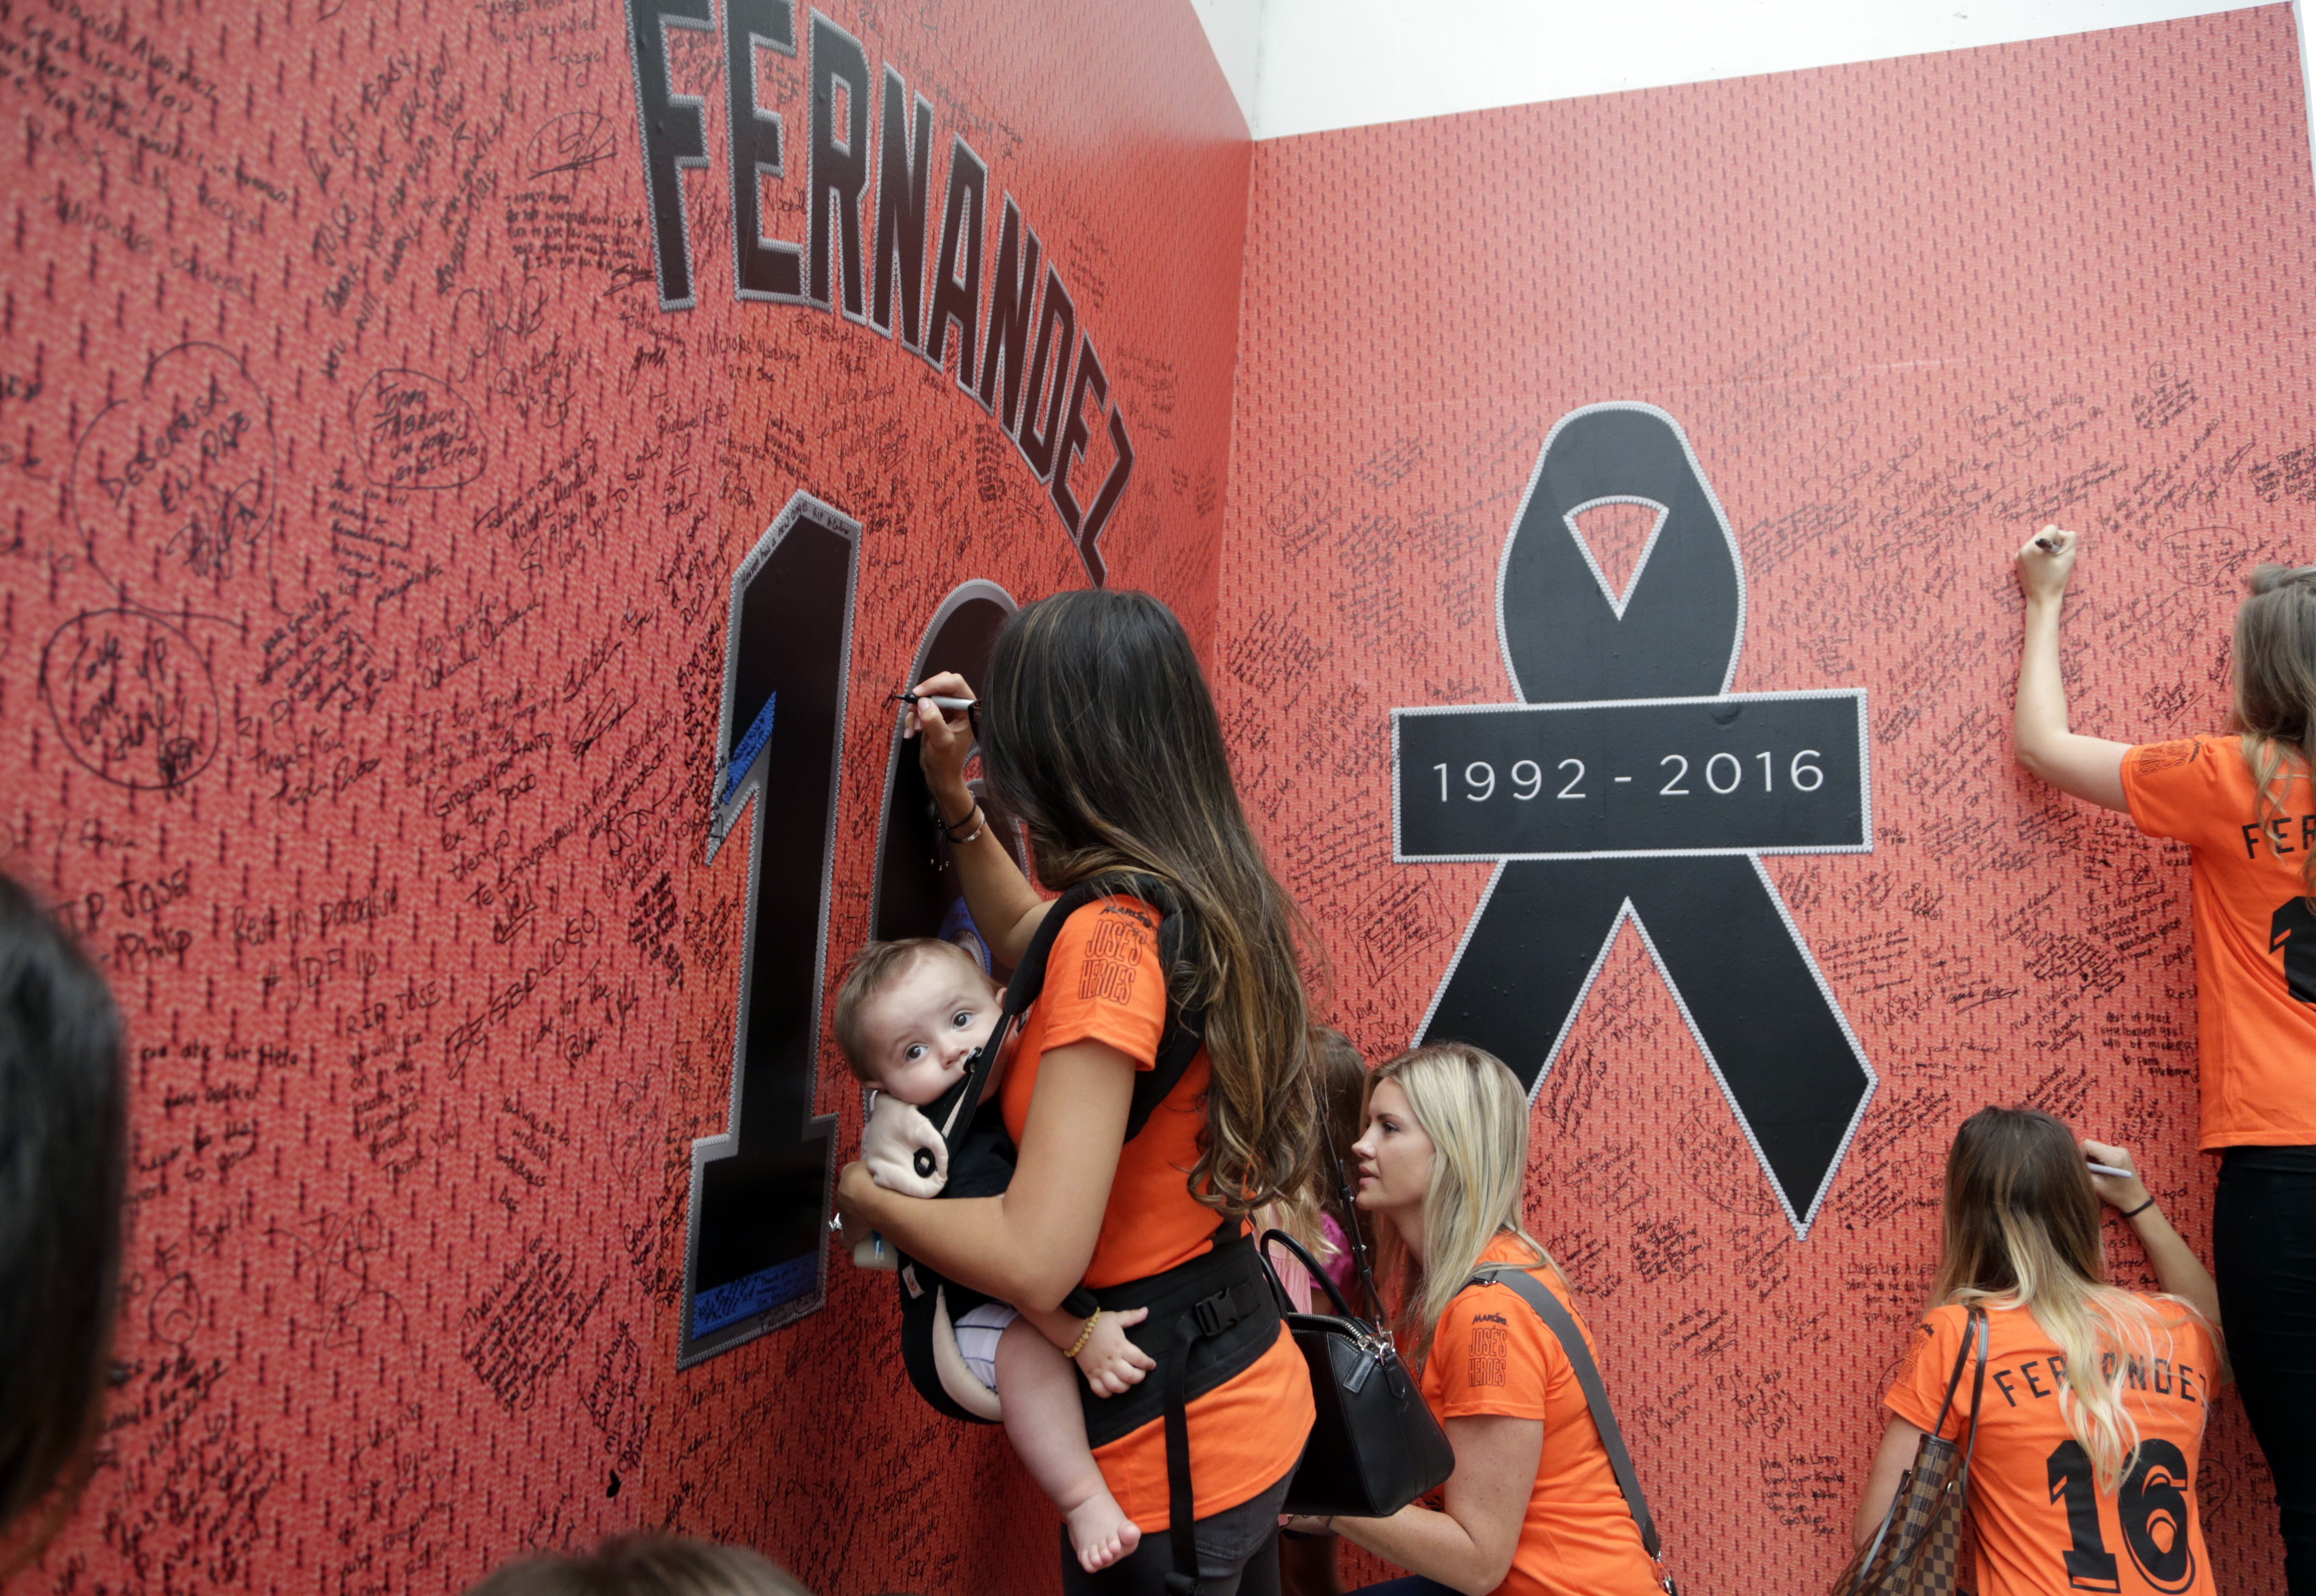 Fans sign a wall at a makeshift memorial for Miami Marlins pitcher Jose Fernandez before a baseball game between the Miami Marlins and the New York Mets , Monday, Sept. 26, 2016, in Miami. Fernandez died in a boating accident early Sunday. (AP Photo/Lynne